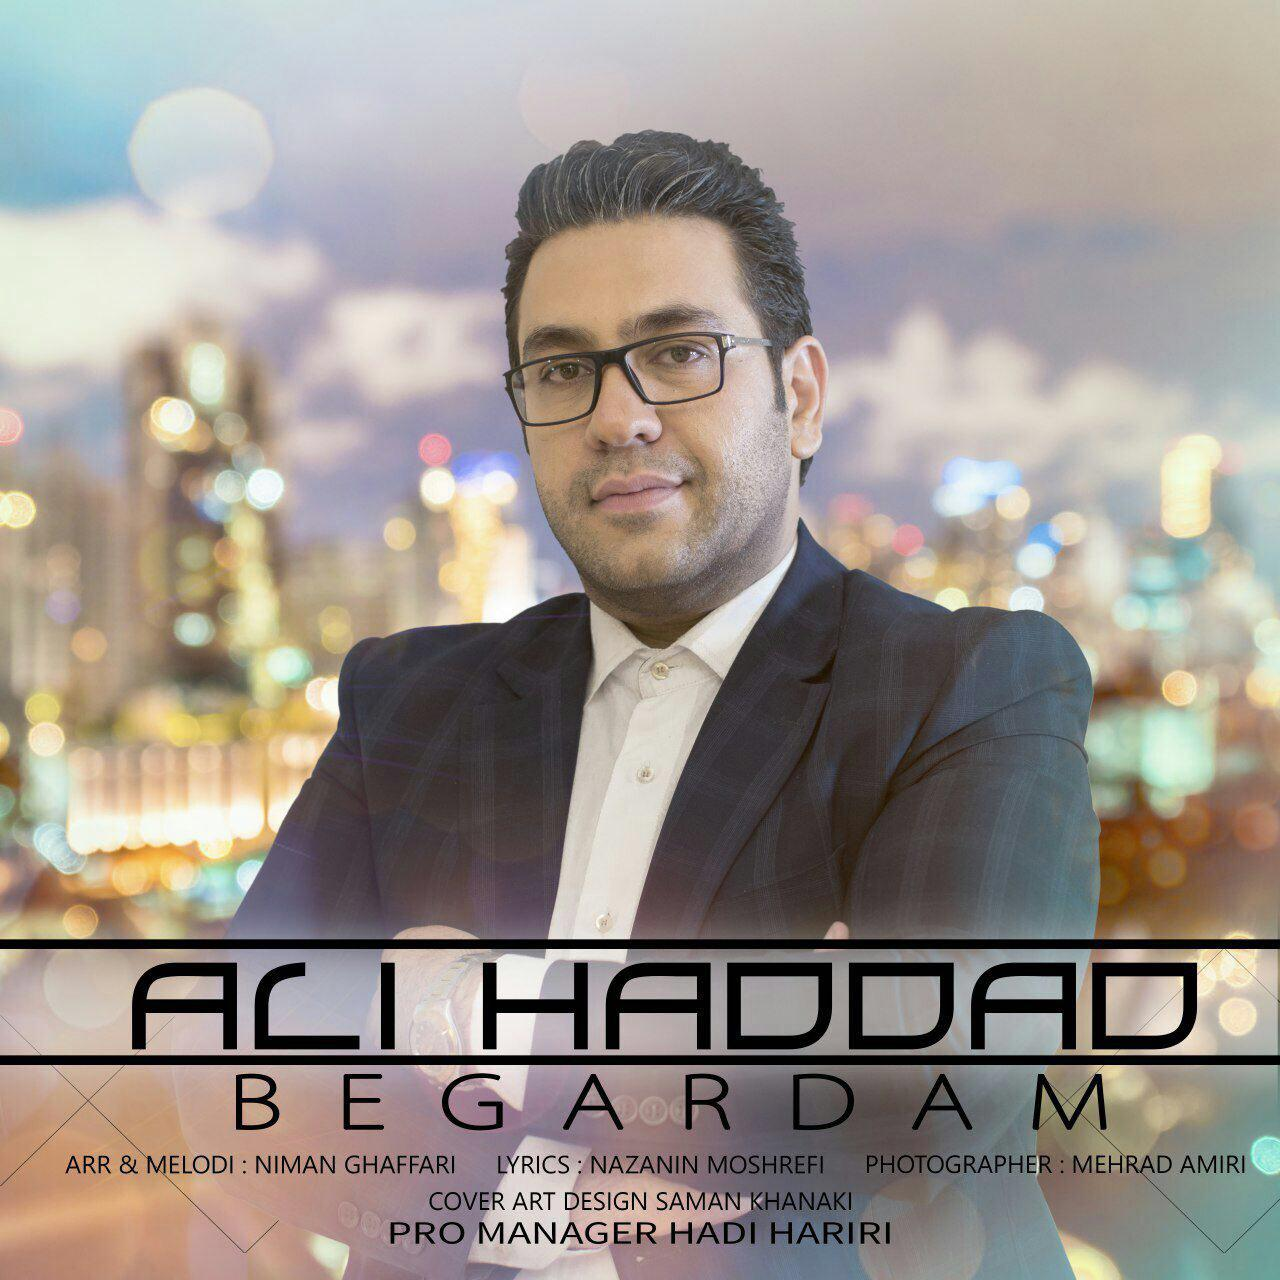 Ali Haddad – Begardam